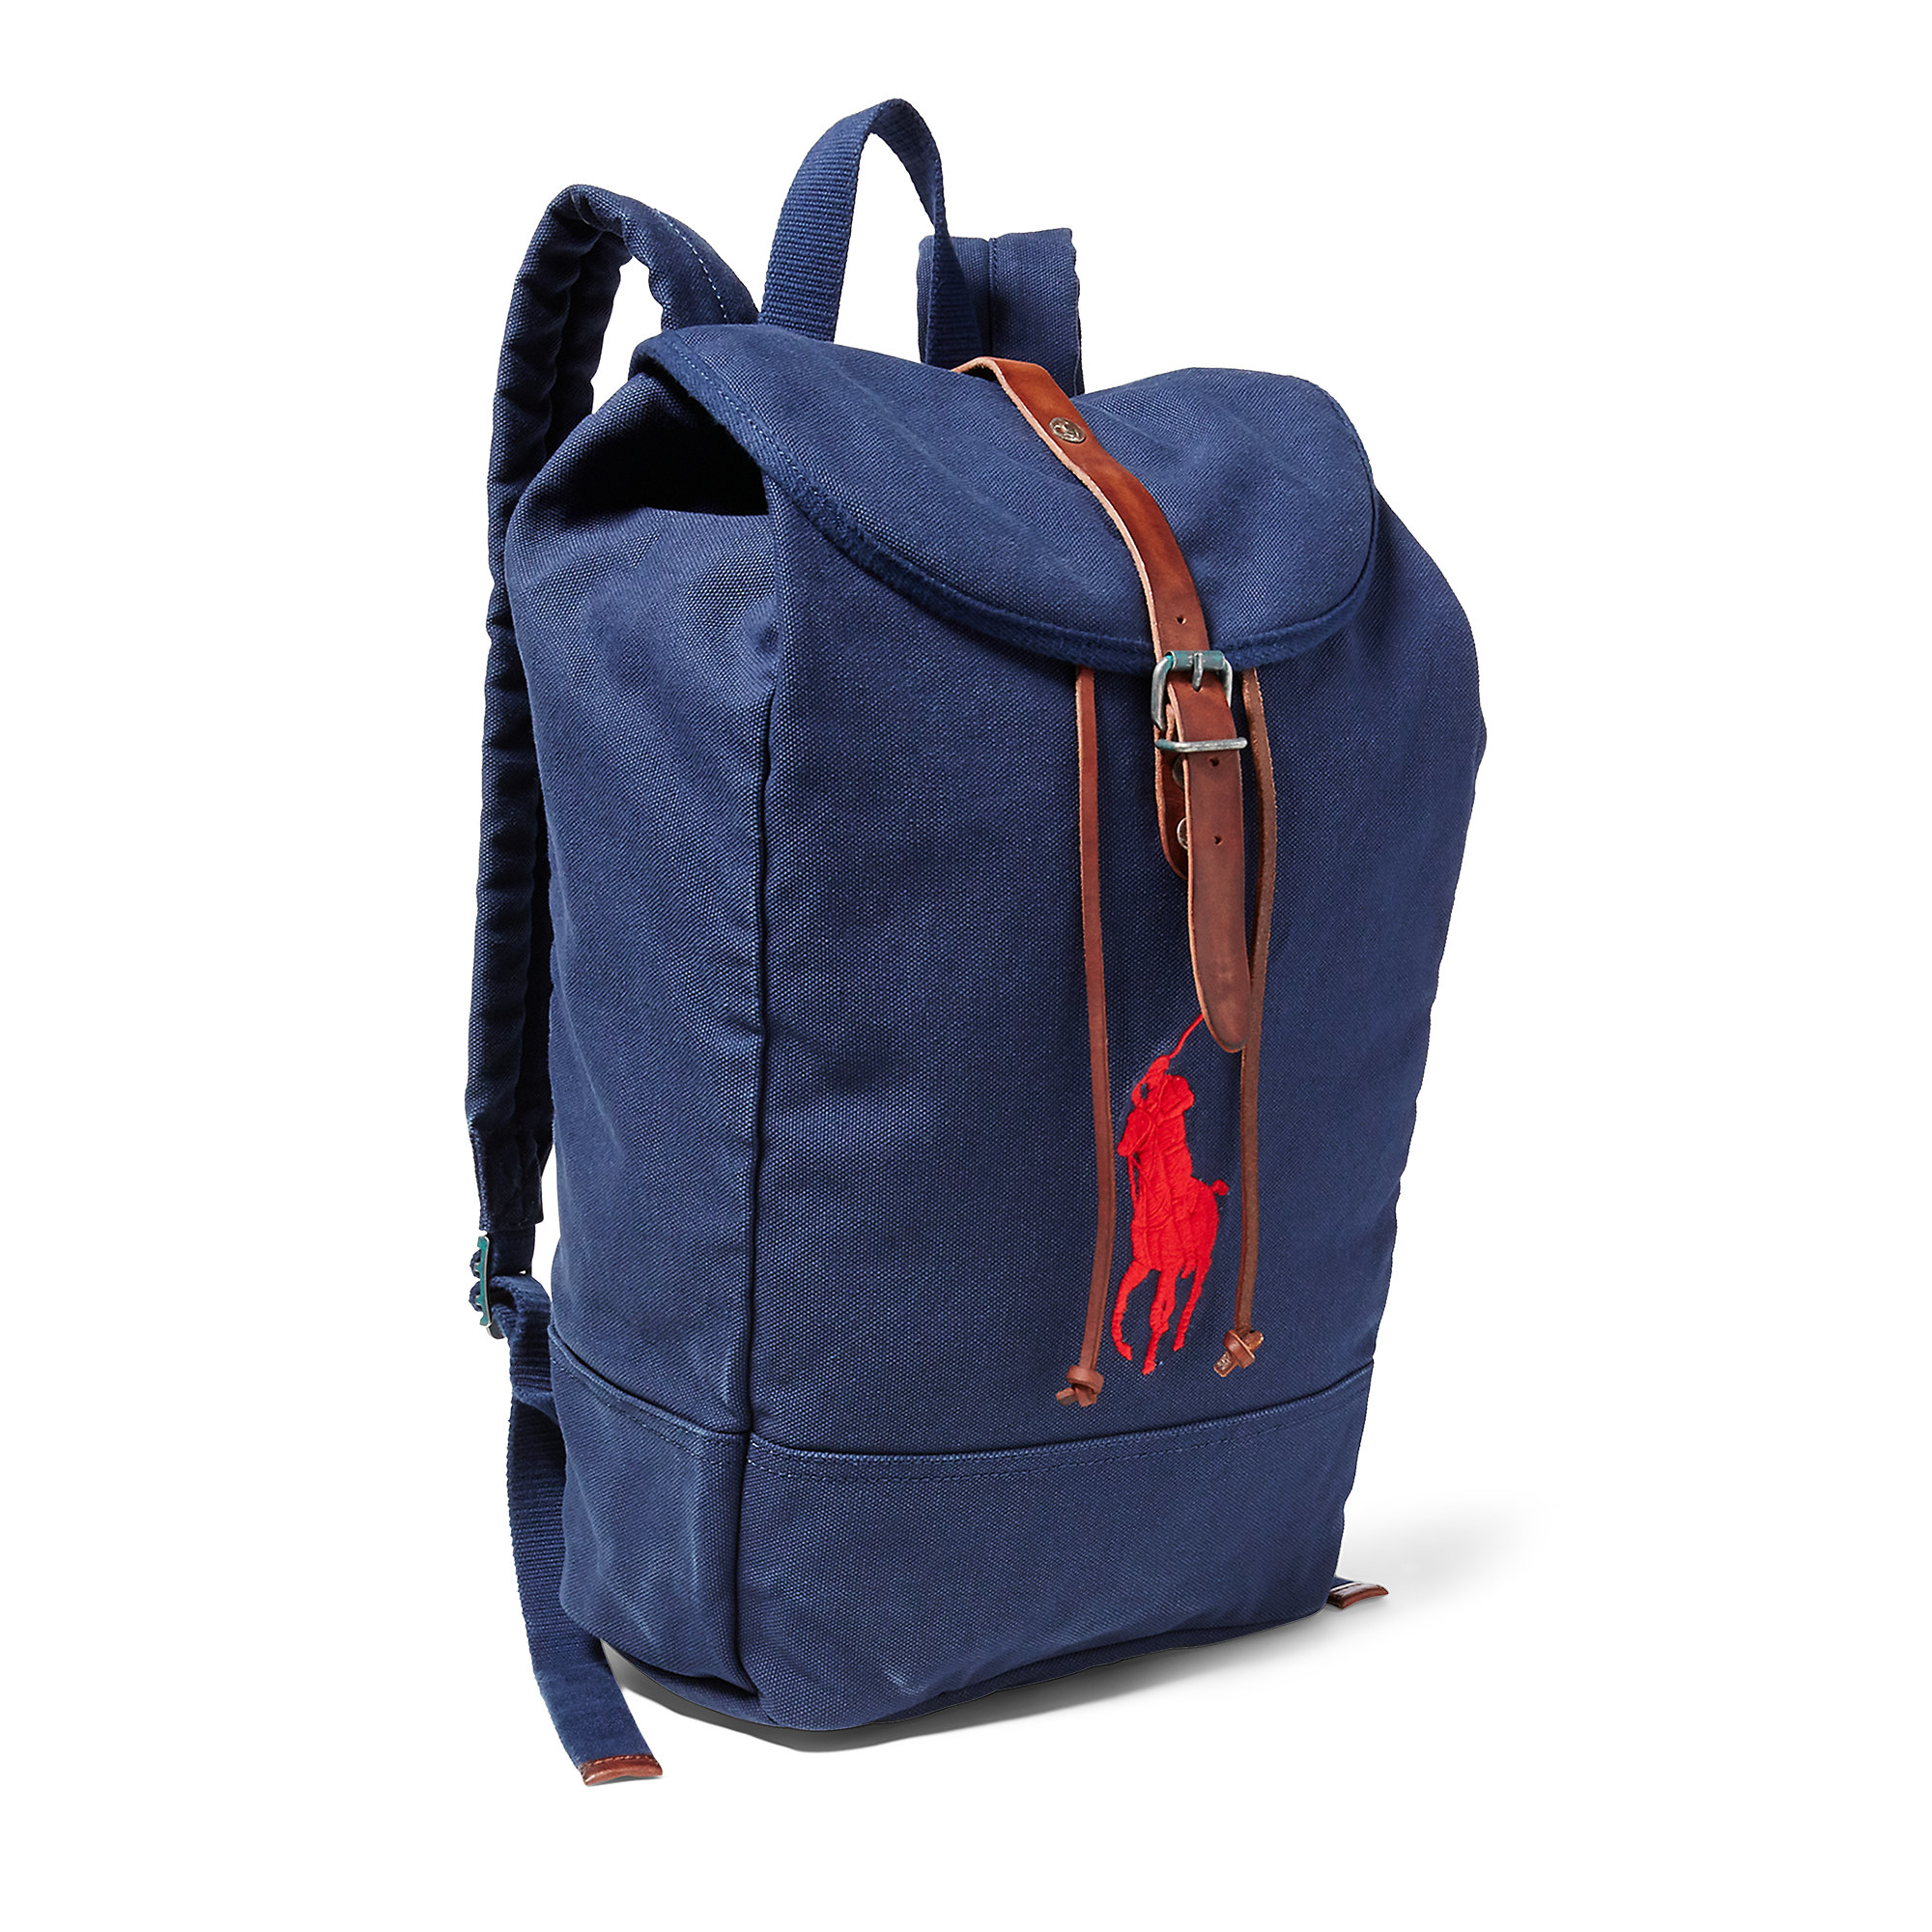 Lyst - Polo Ralph Lauren Big Pony Canvas Backpack in Blue for Men 455f6813bf177